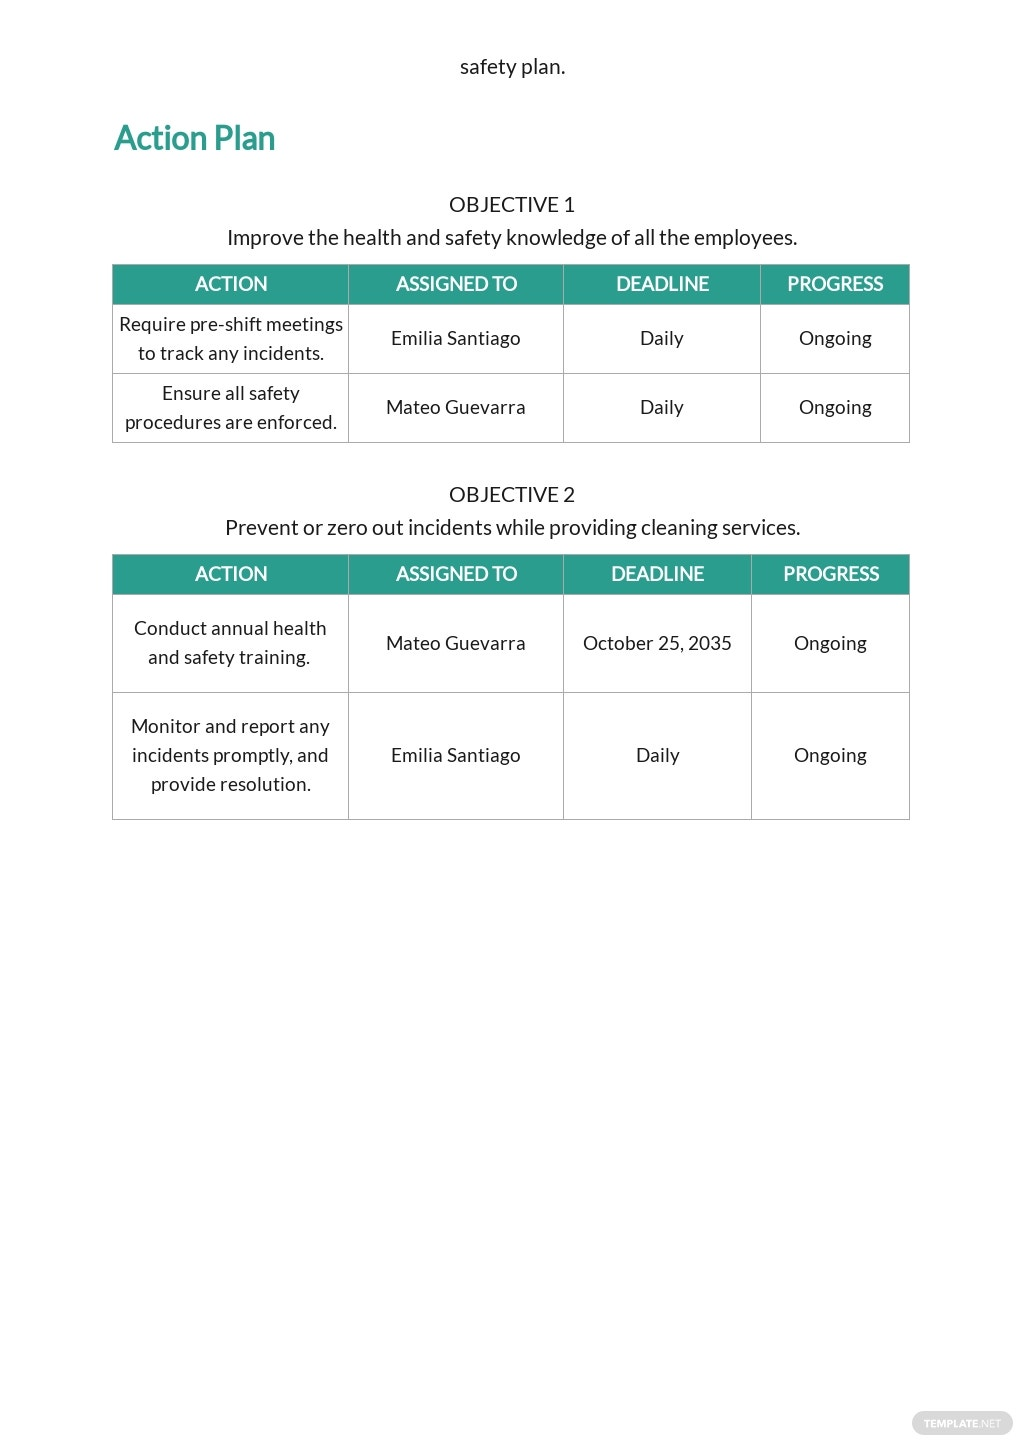 Health and Safety Plan Template for Cleaning Services 2.jpe